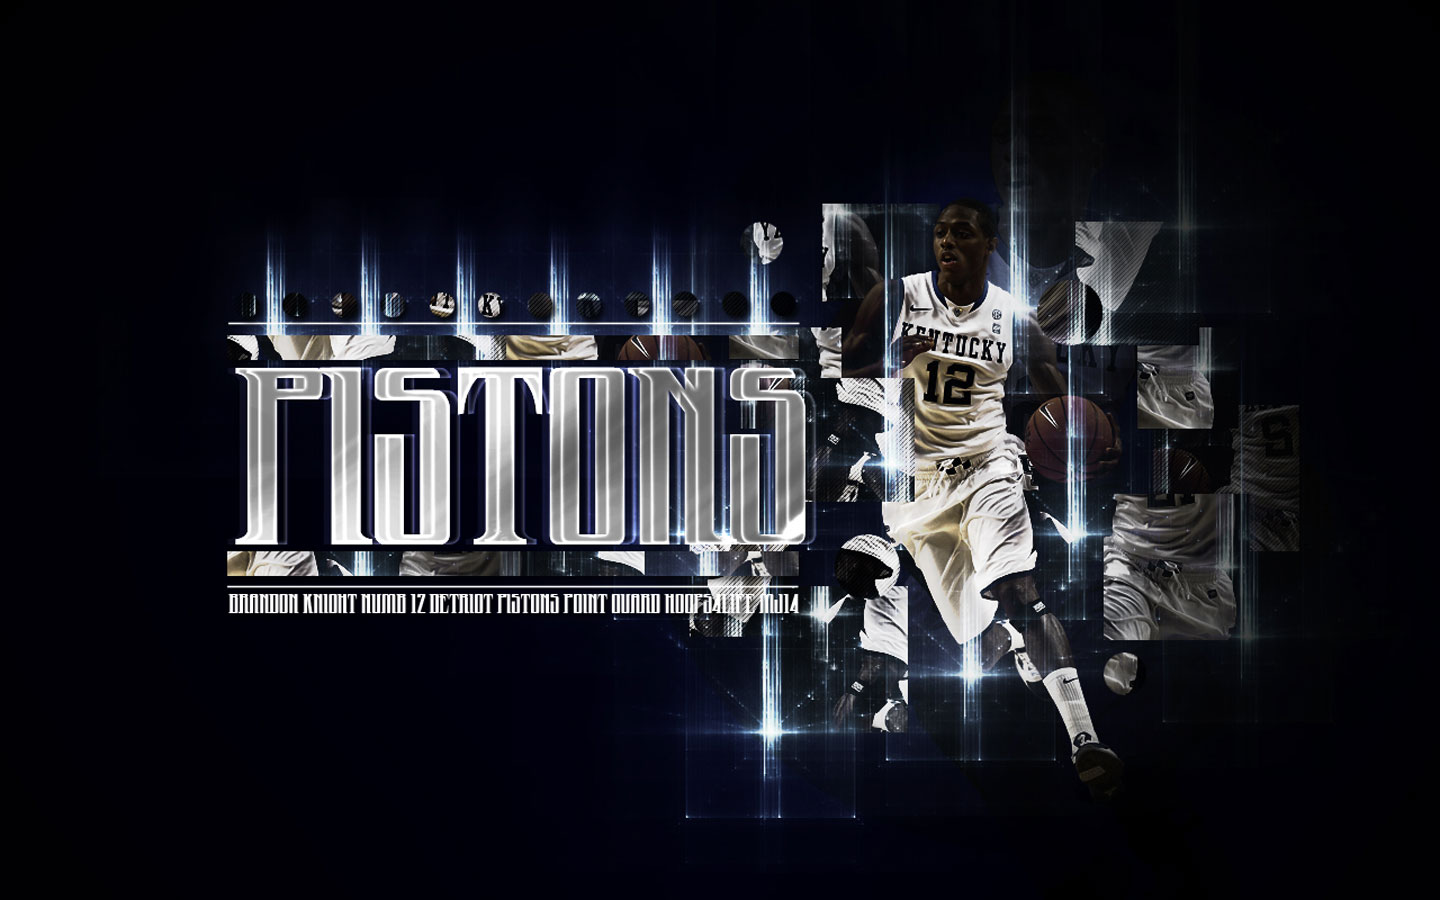 http://2.bp.blogspot.com/-dnYL_Mo_bZo/Tib4144uUtI/AAAAAAAAHcg/UPHZGy00mRk/s1600/Brandon-Knight-Kentucky-Widescreen-Wallpaper-BasketWallpapers.com-.jpg